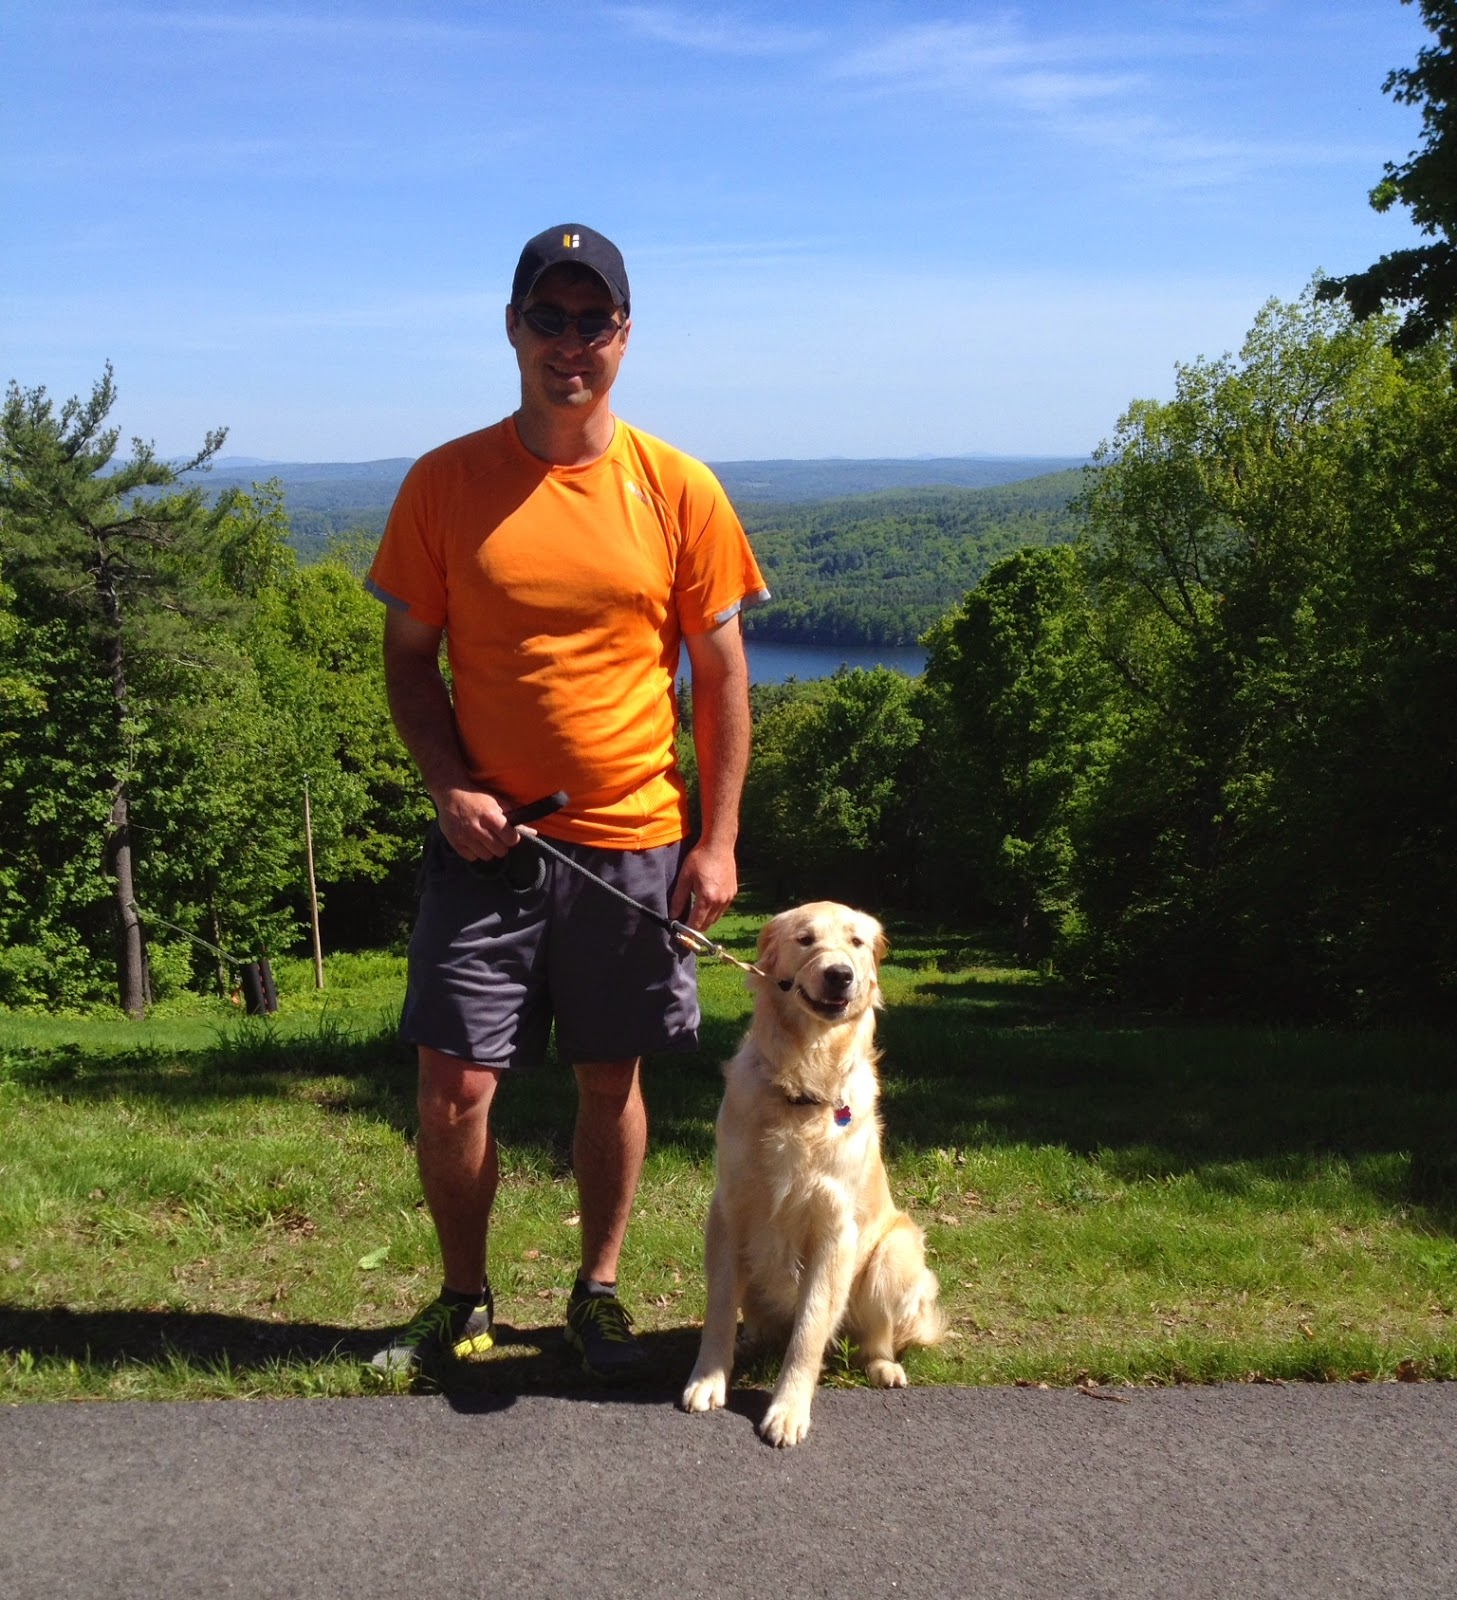 living a healthy lifestyle by hiking with your golden retriever dog